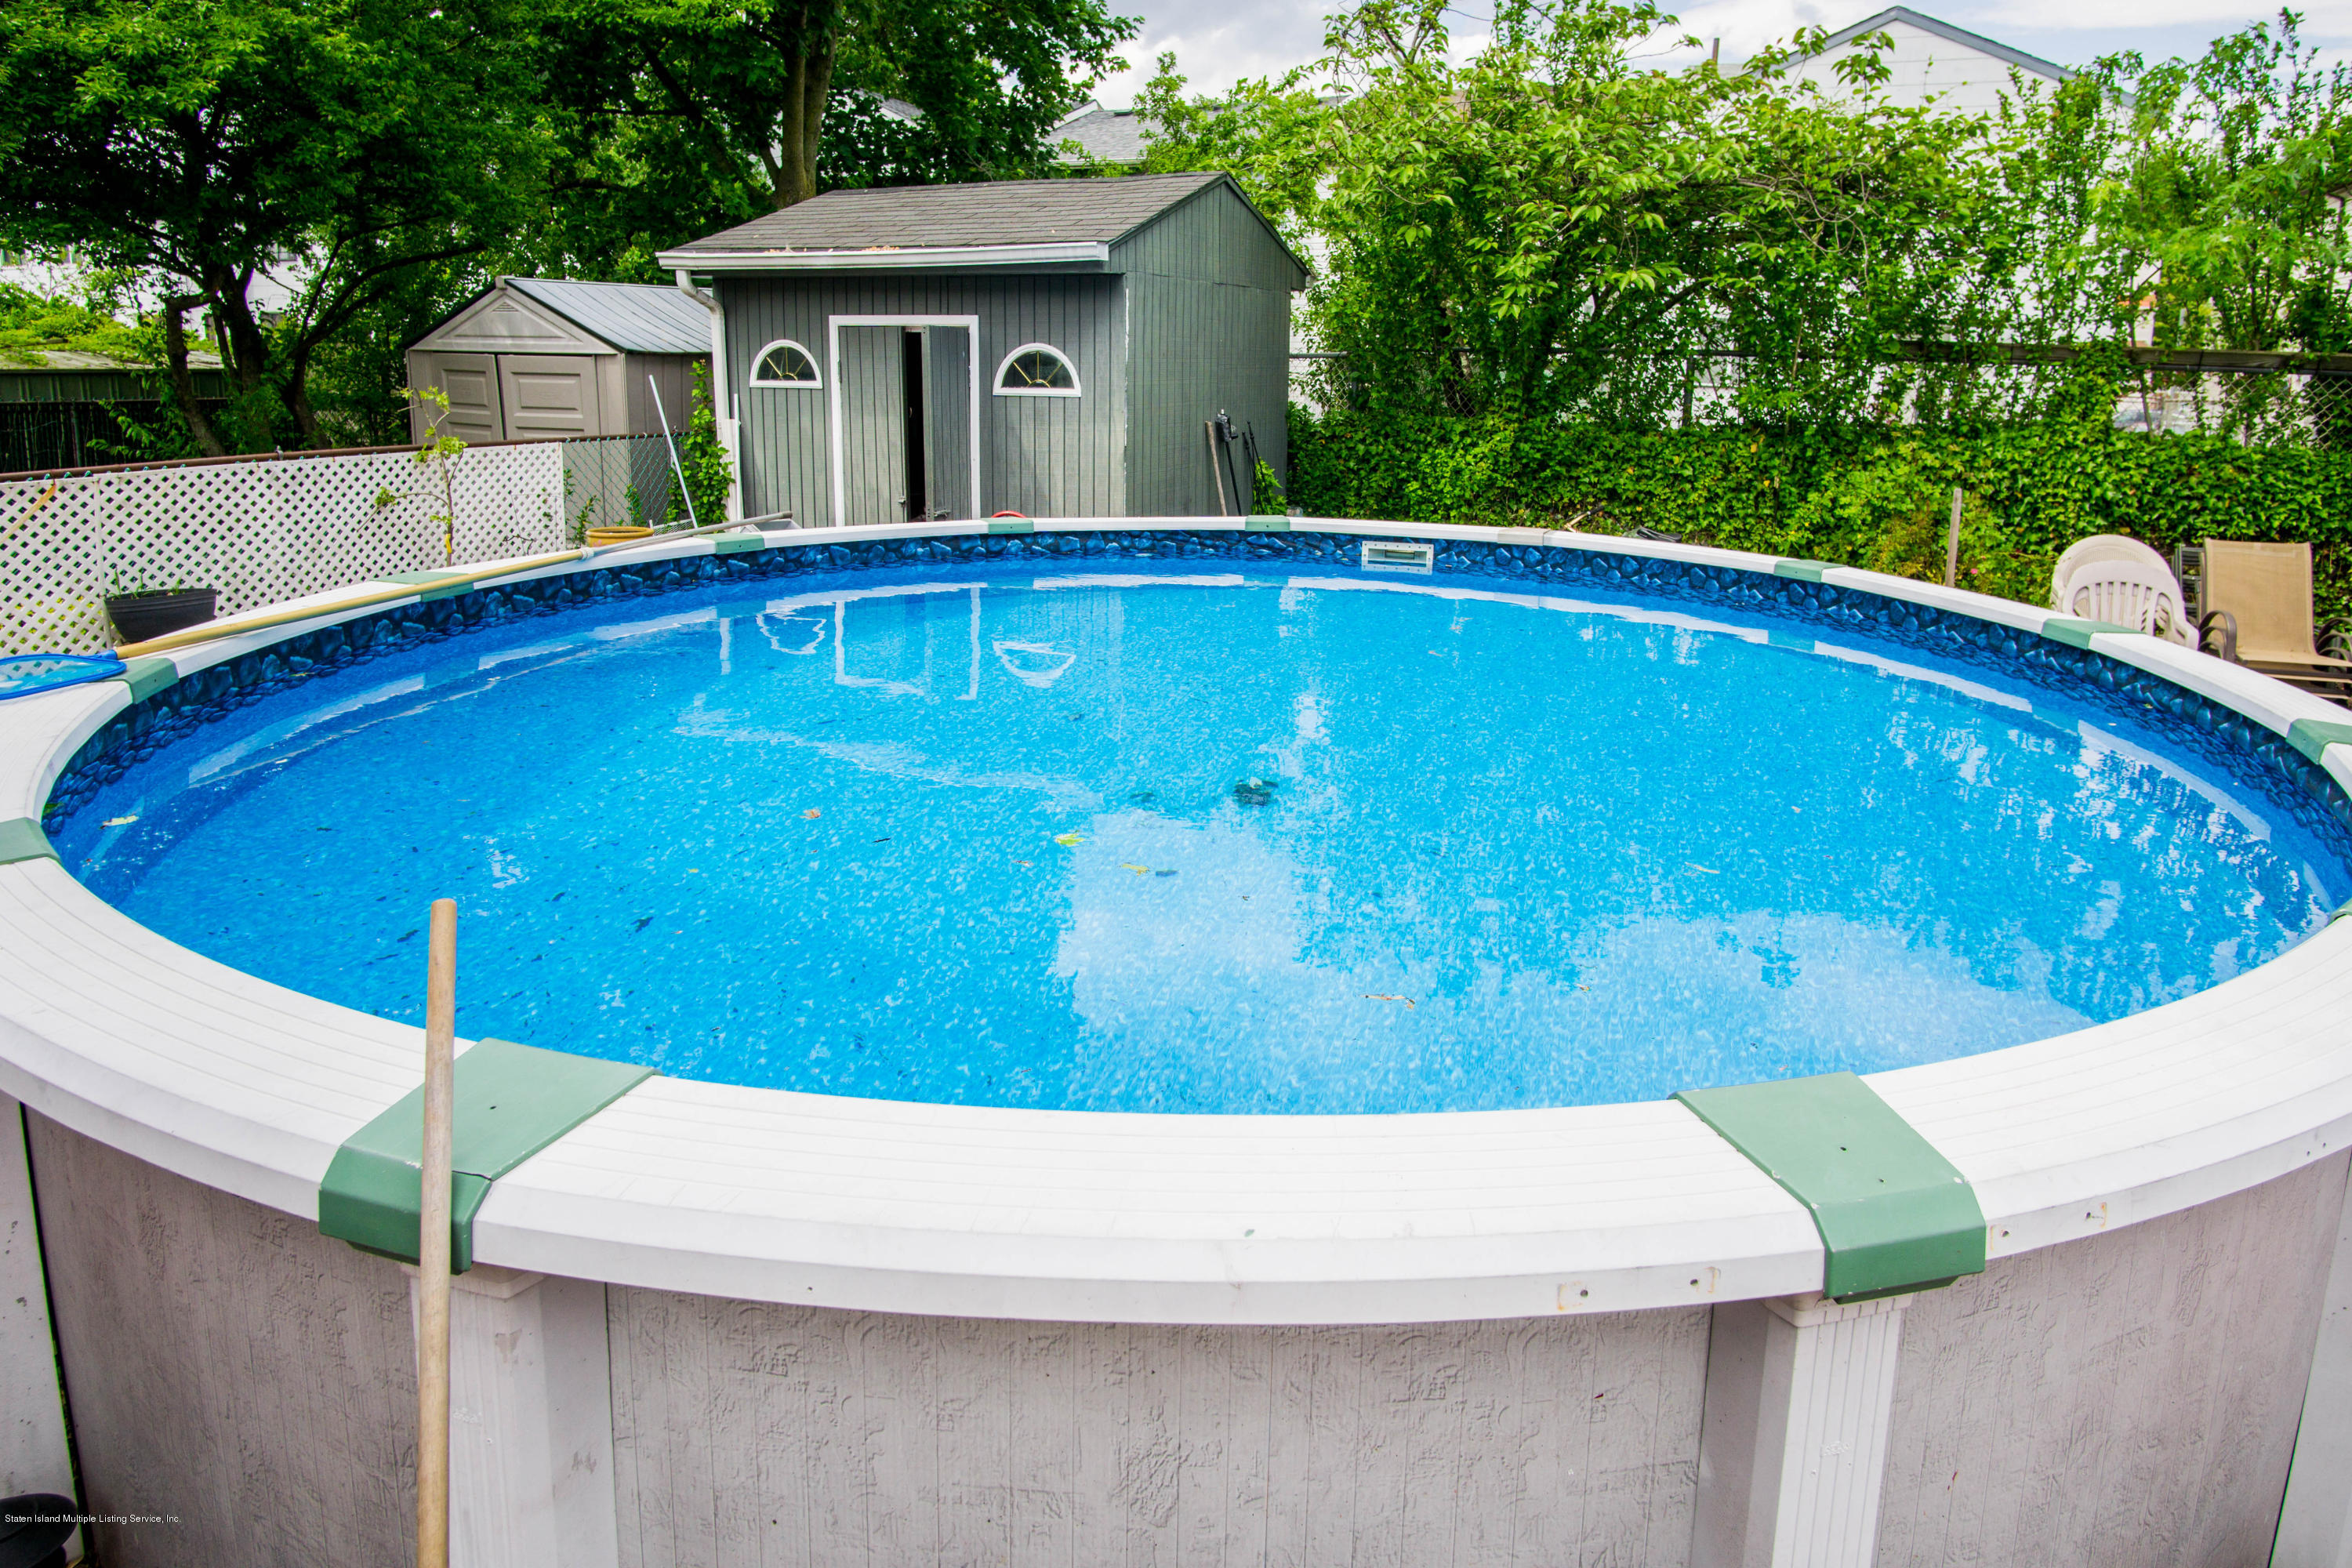 Two Family - Semi-Attached 95 Regis Drive  Staten Island, NY 10314, MLS-1129148-18